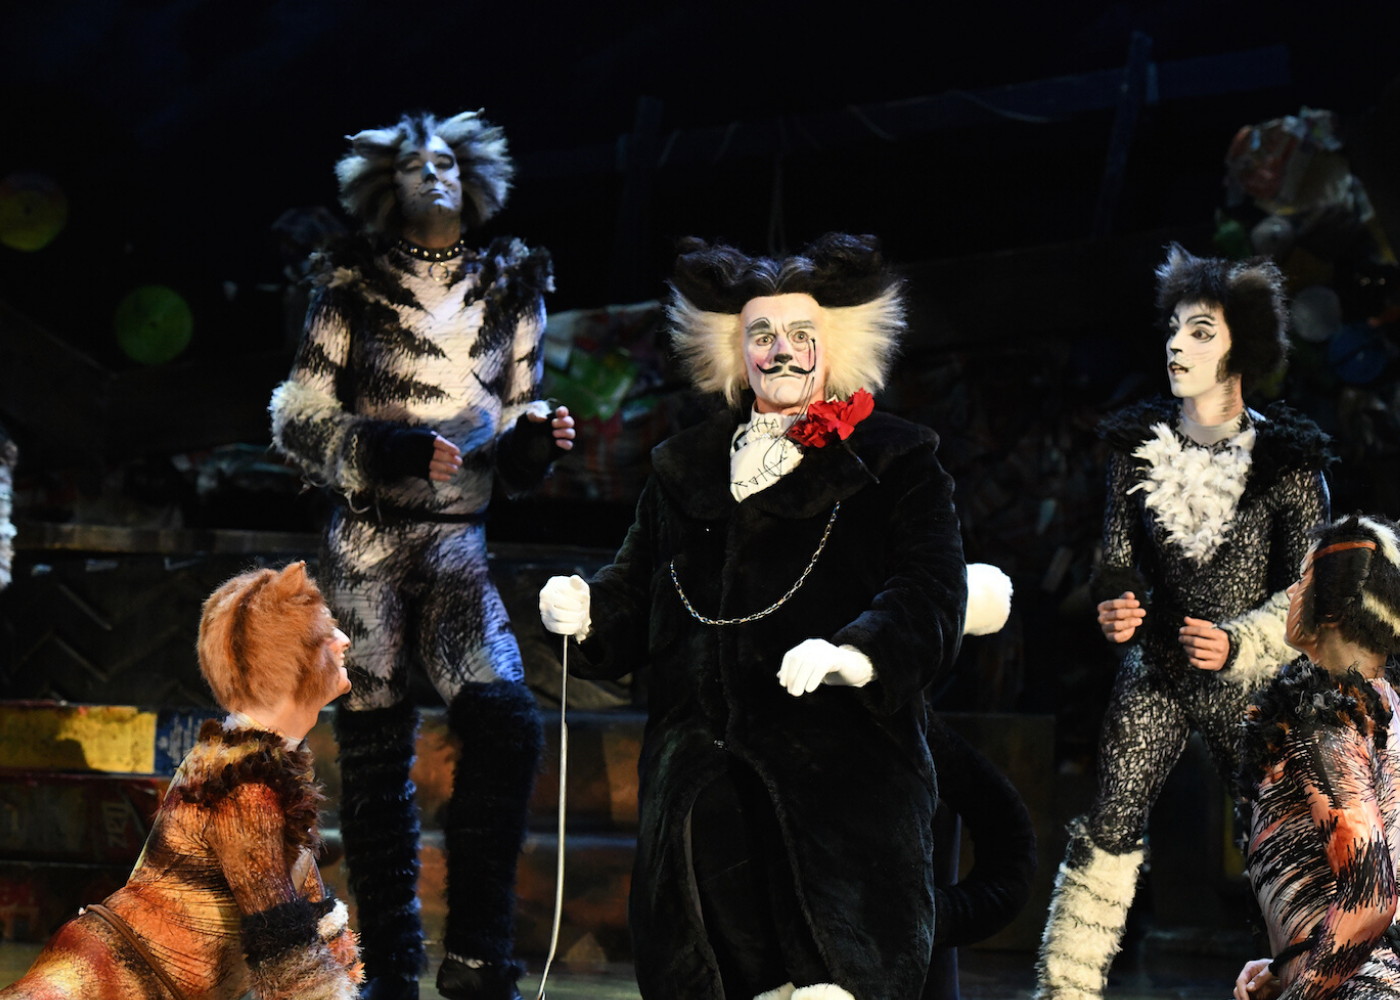 Cats the Musical review A campy theatrical spectacle